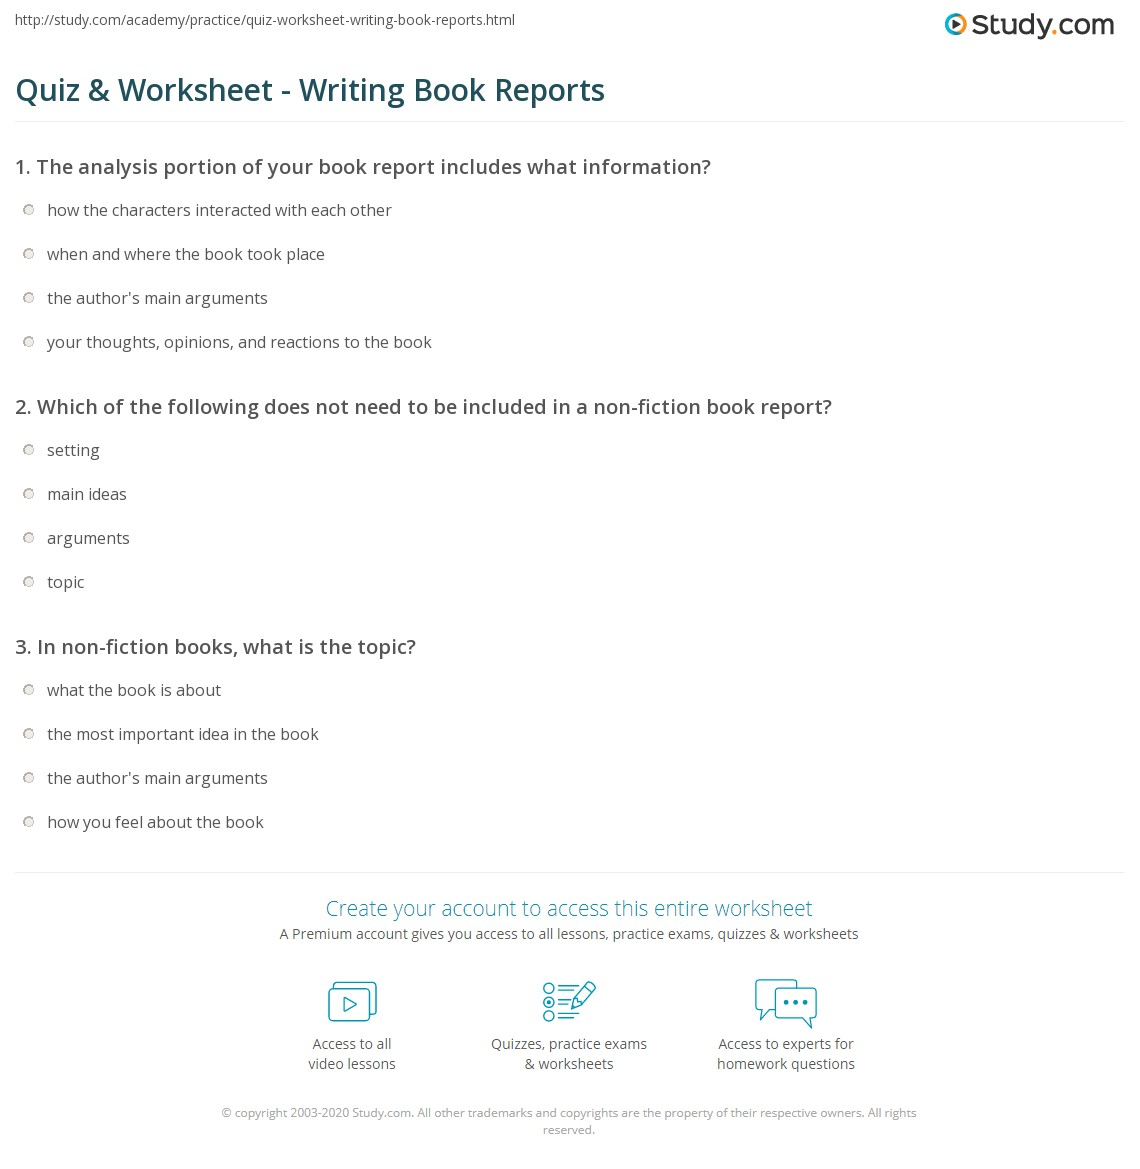 Quiz Worksheet Writing Book Reports Study